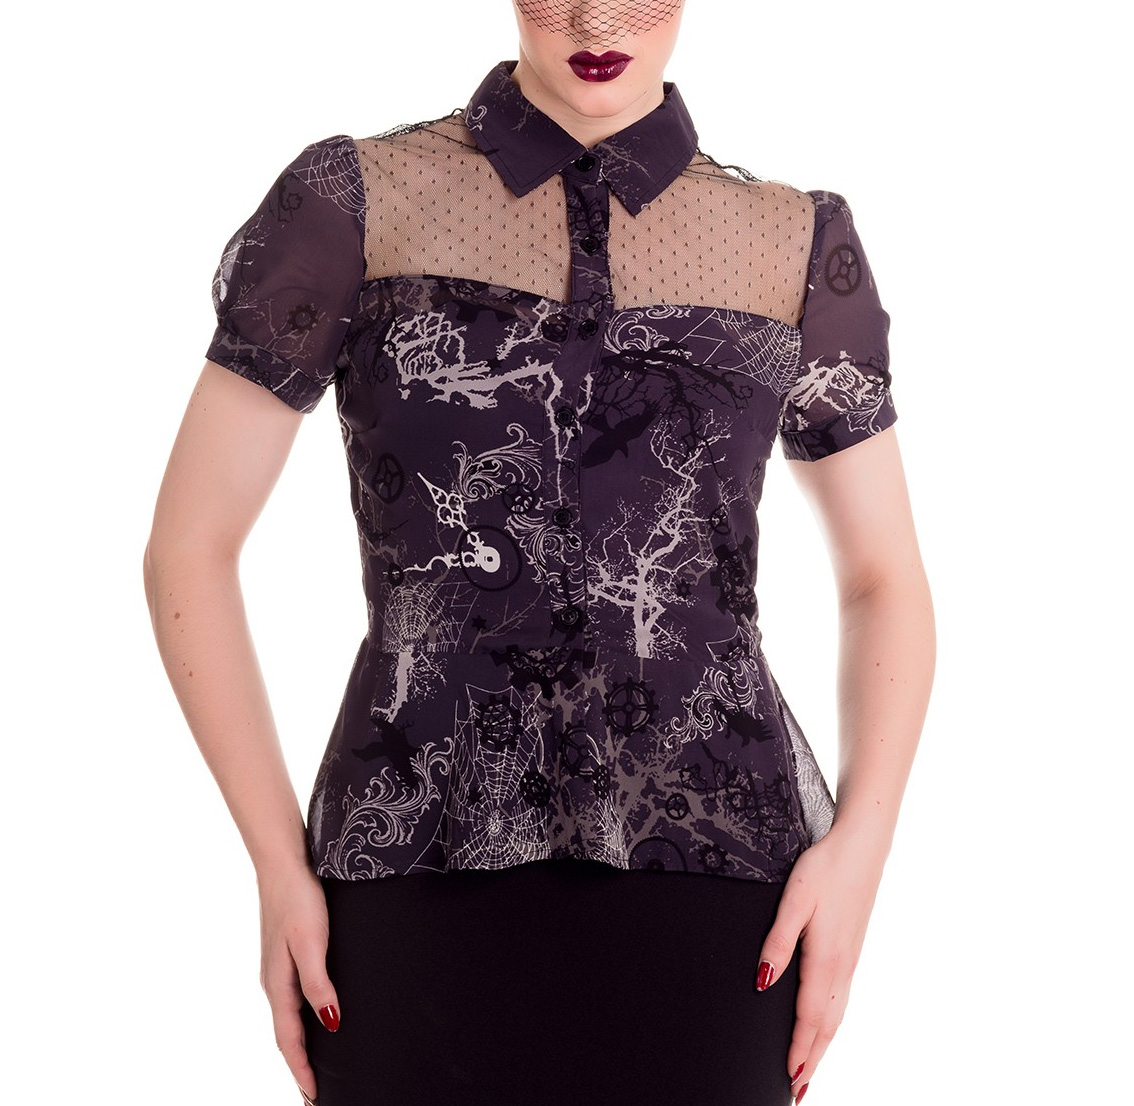 Hell-Bunny-Spin-Doctor-Steampunk-Goth-Shirt-Top-ALTAIRA-Blouse-All-Sizes thumbnail 7